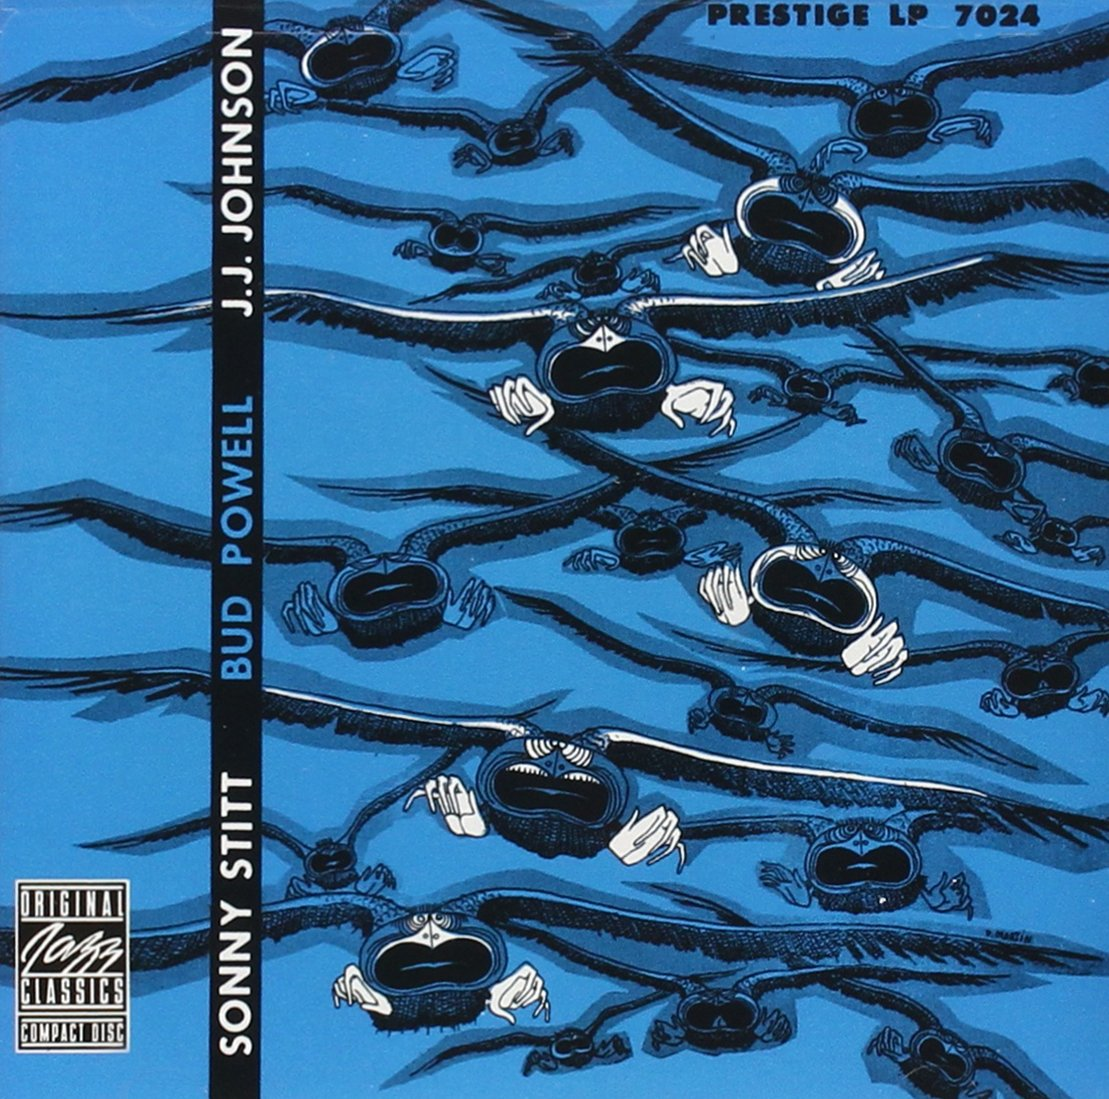 Sonny Stitt / Bud Powell / J.J.Johnson